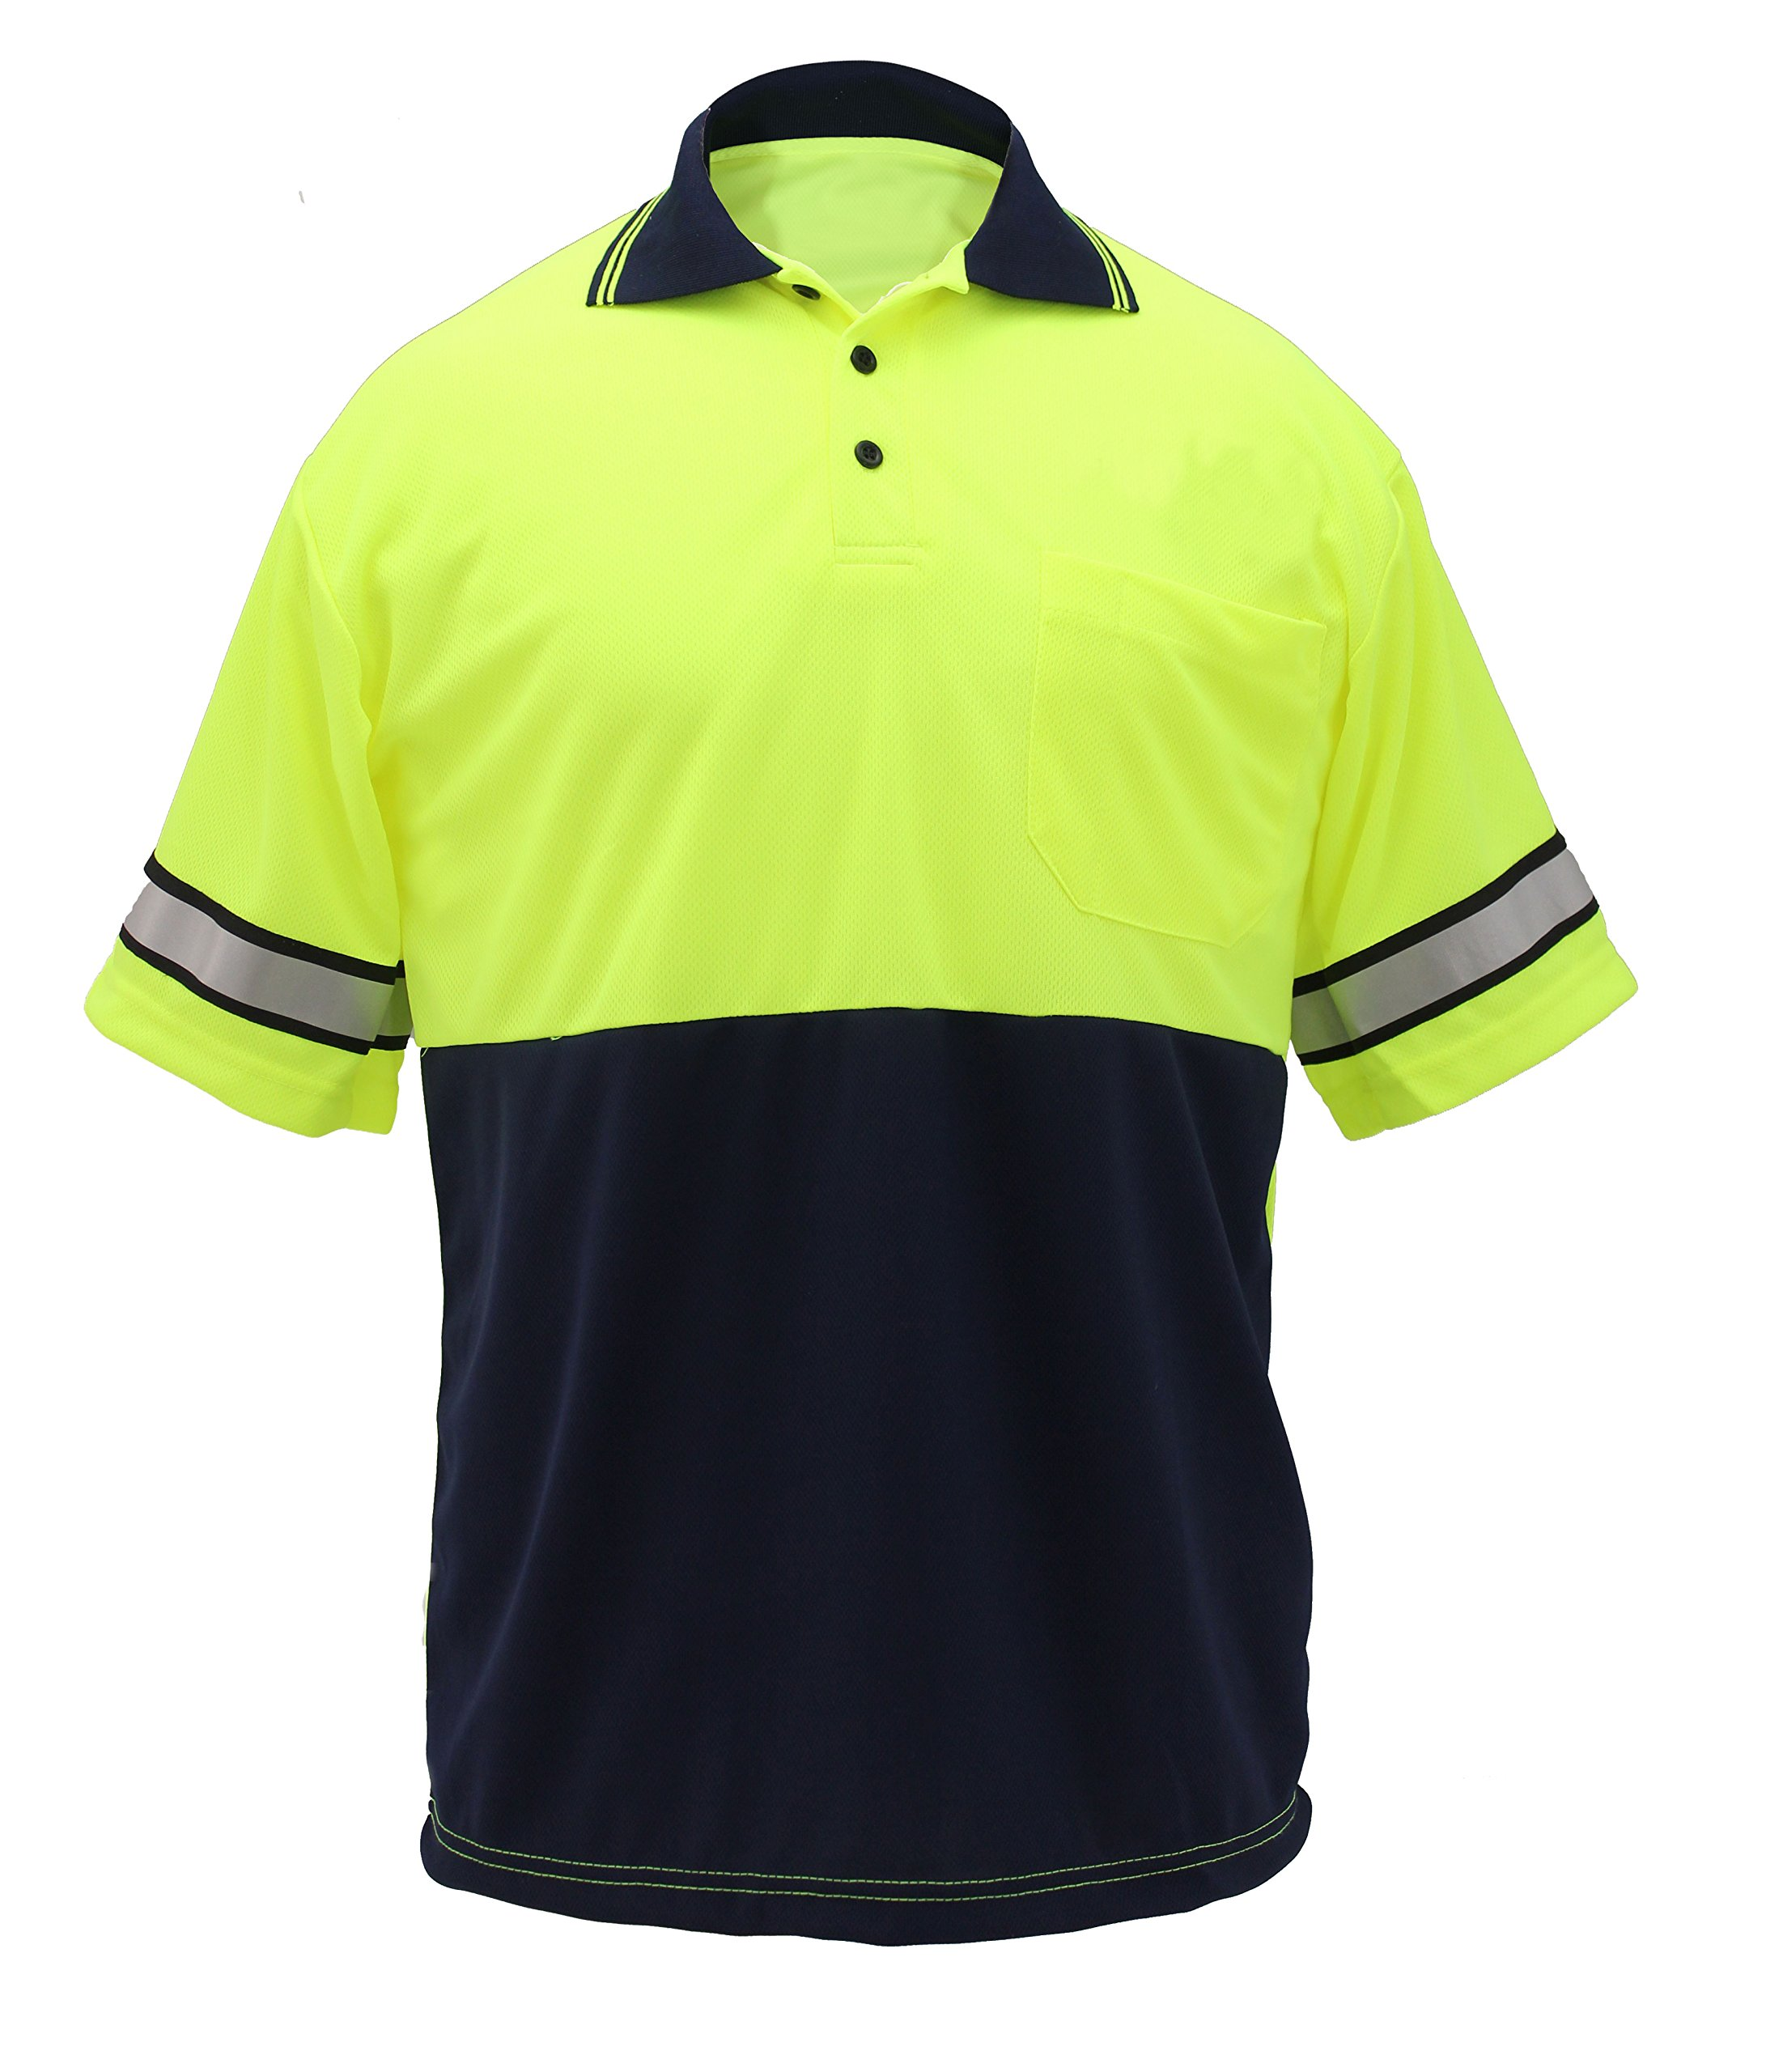 First Class Two Tone Polyester Polo Shirt with Reflective Stripes Lime Yellow/Navy (XL)